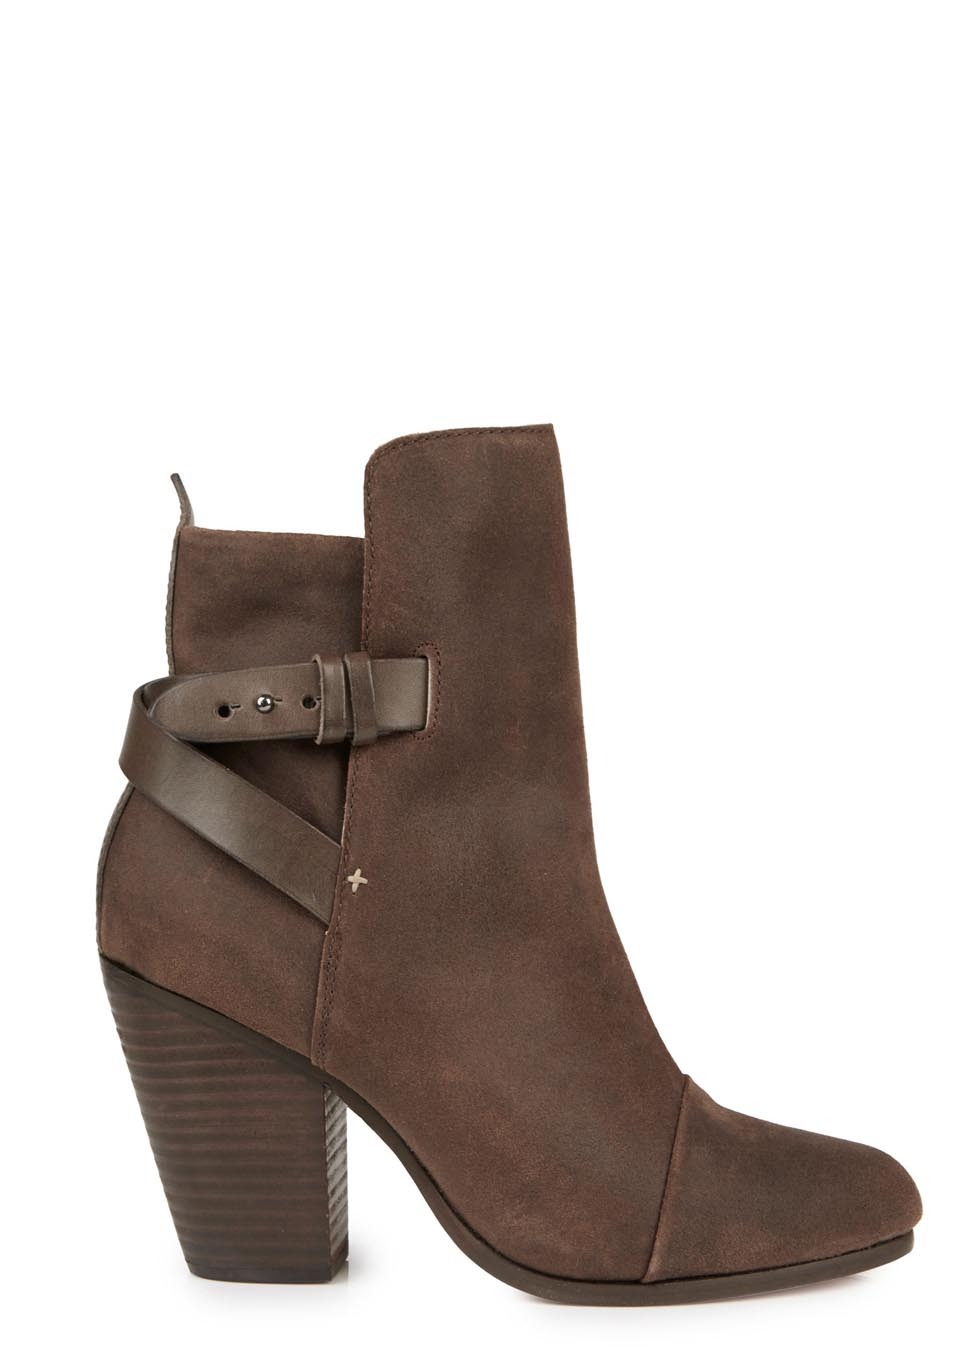 Kinsey Brown Leather Ankle Boots - predominant colour: chocolate brown; occasions: casual, creative work; material: suede; heel: standard; toe: round toe; boot length: mid calf; style: standard; finish: plain; pattern: plain; heel height: very high; season: s/s 2014